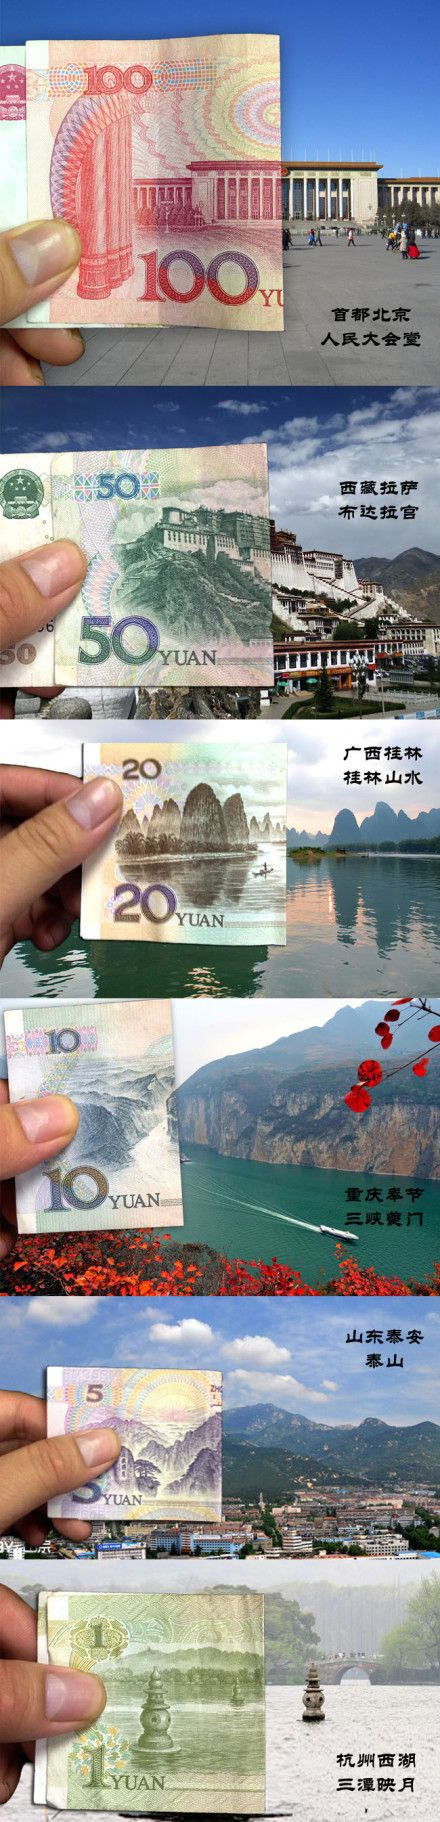 Where are the places on the Chinese Yuan notes?: